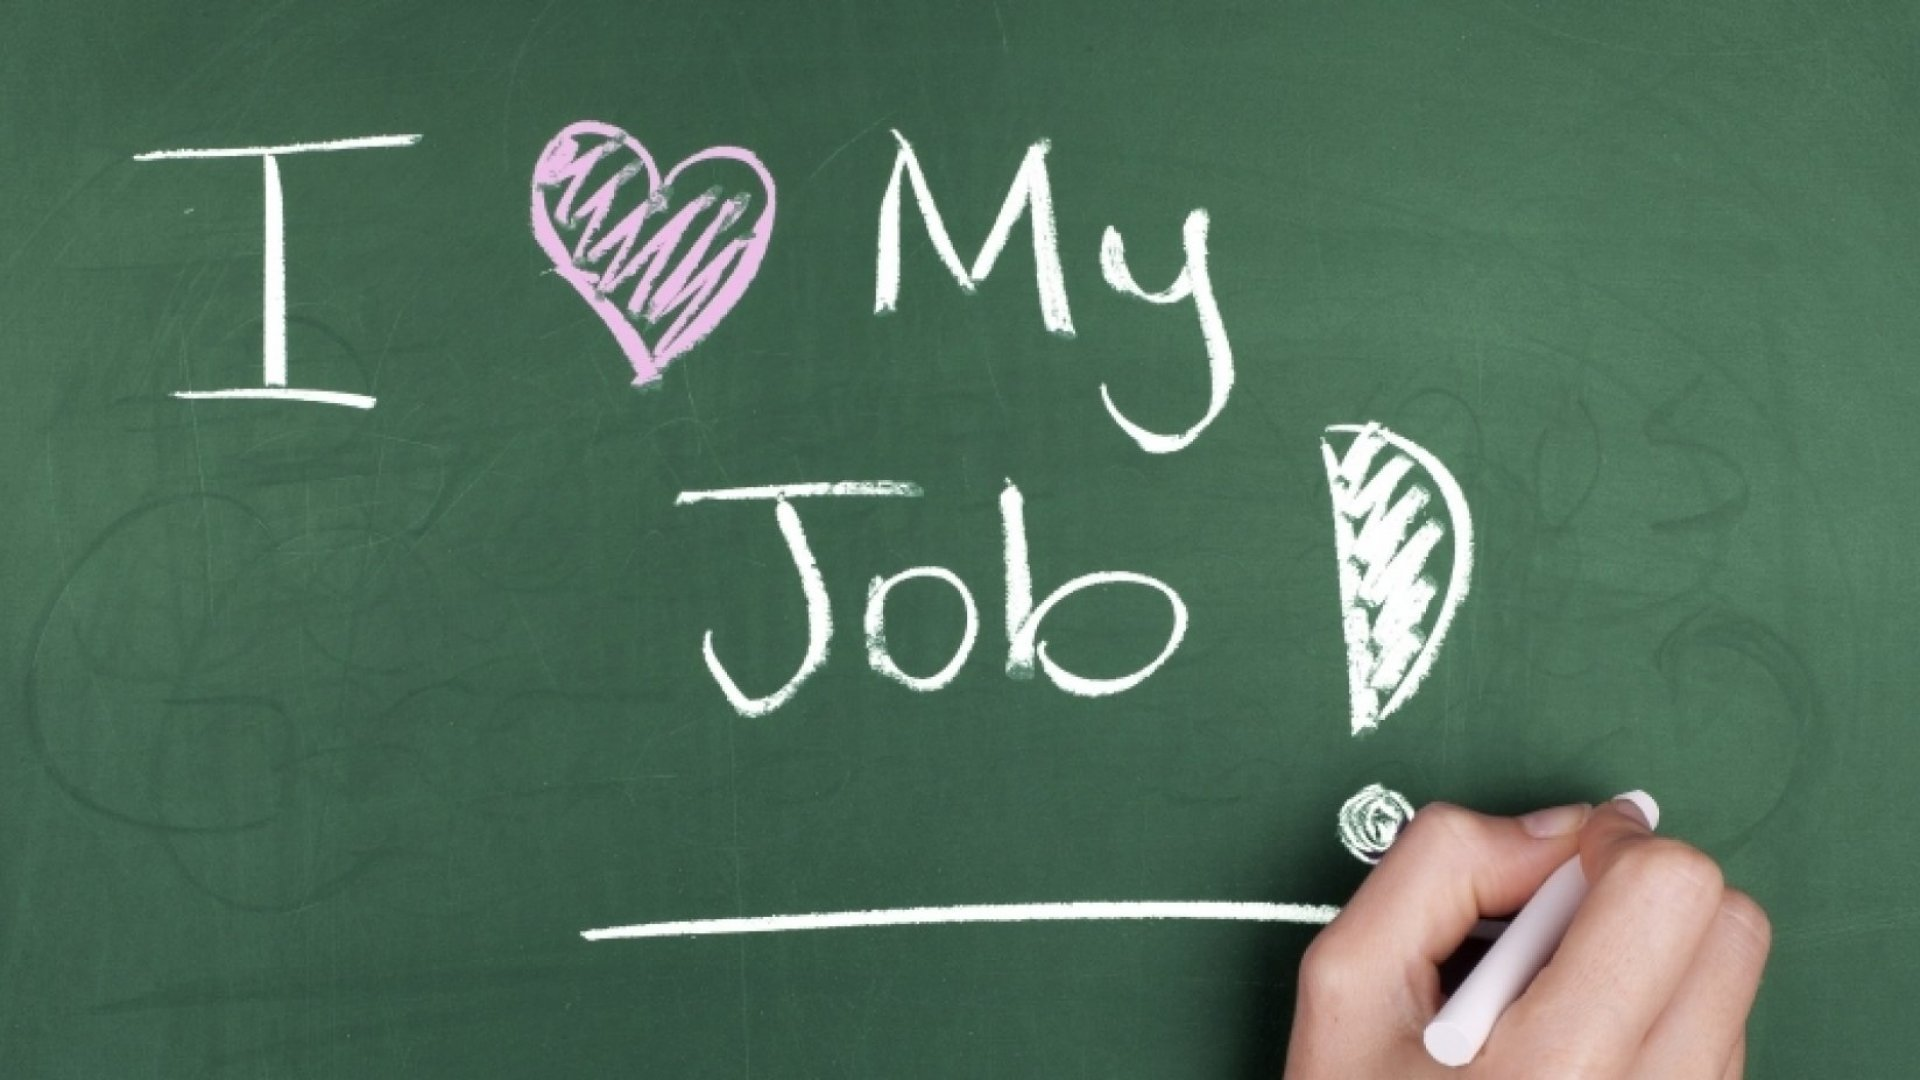 7 Awesome Ways to Map Out Your Dream Job